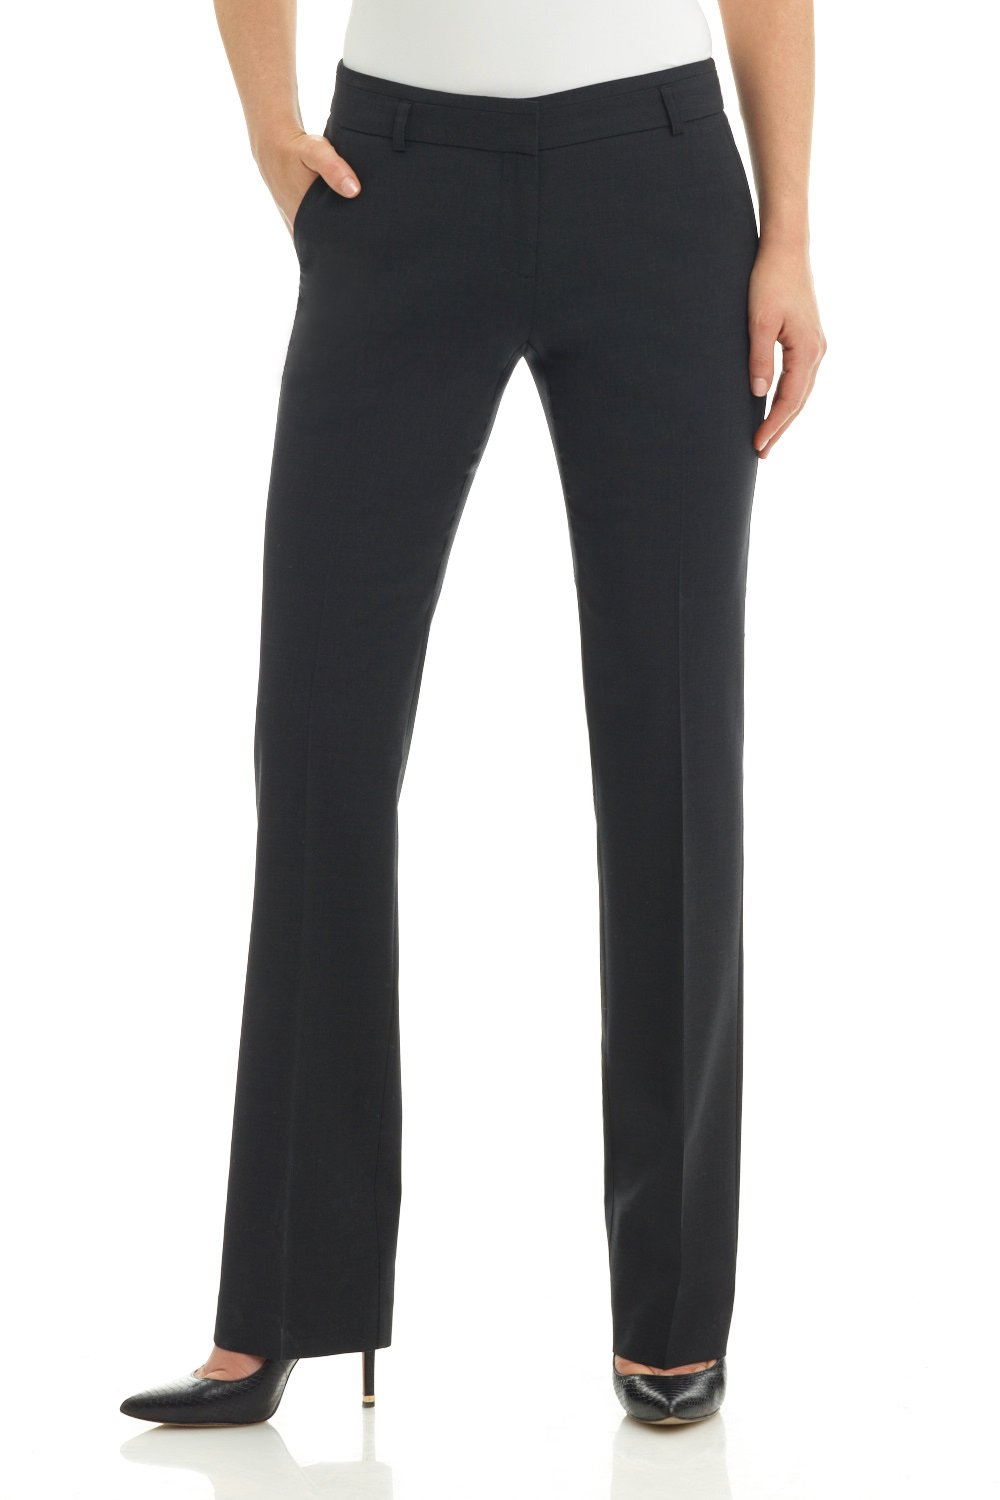 Rekucci Collection Women's Straight Leg Dress Pant with Double Loops (16,Charcoal)